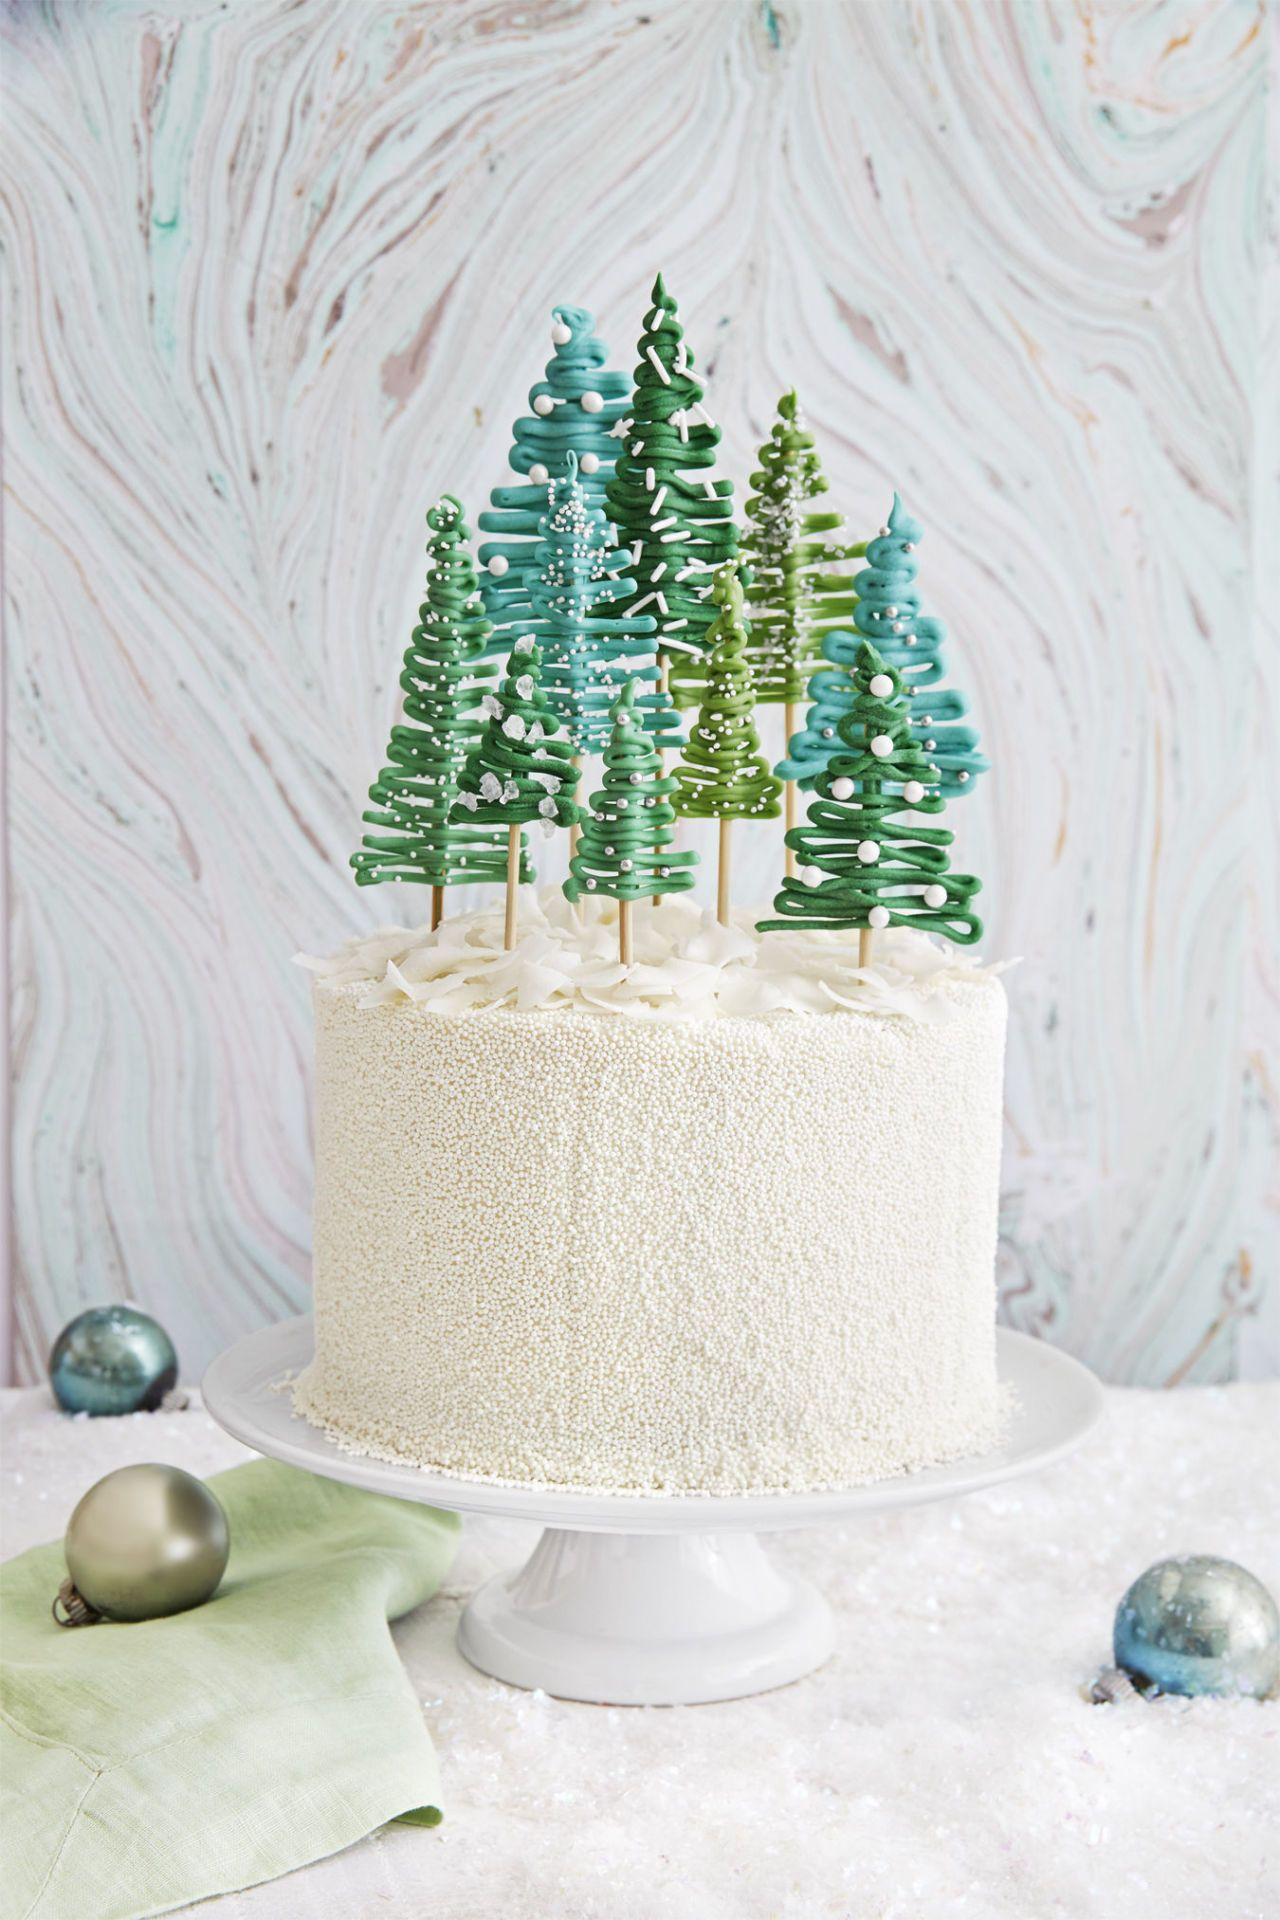 31 of the Most Beautiful Christmas Cakes in 2018 | Christmas Party ...